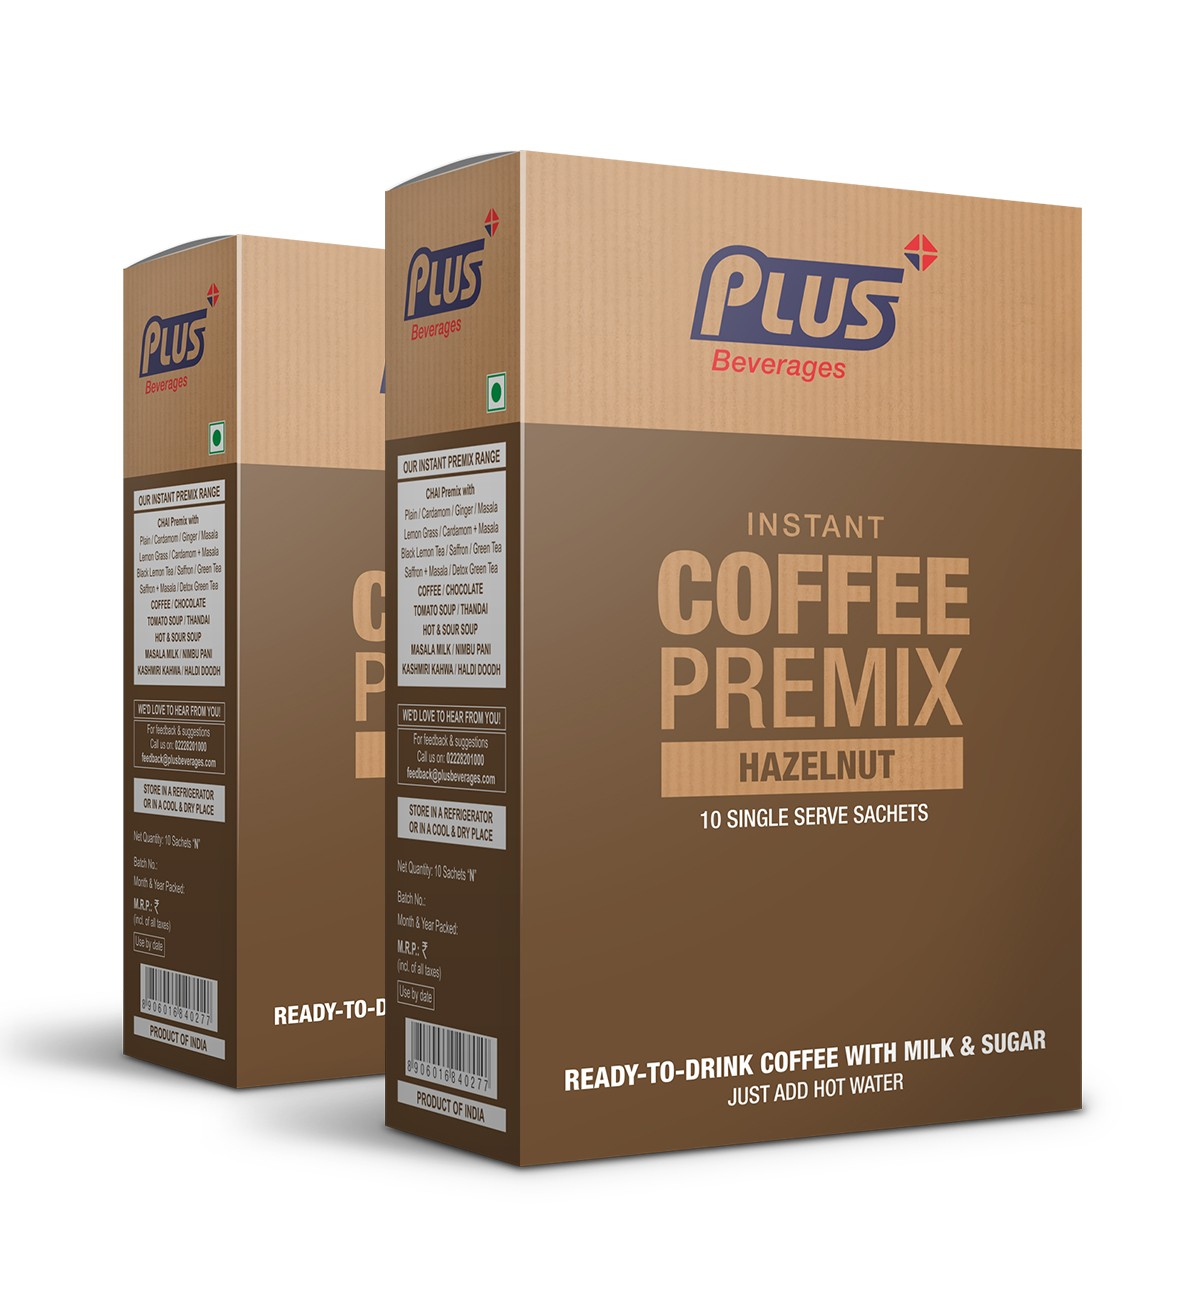 Get Instant Hazel Nut Coffee Premix at best price - Free Shipping | Plus Beverages